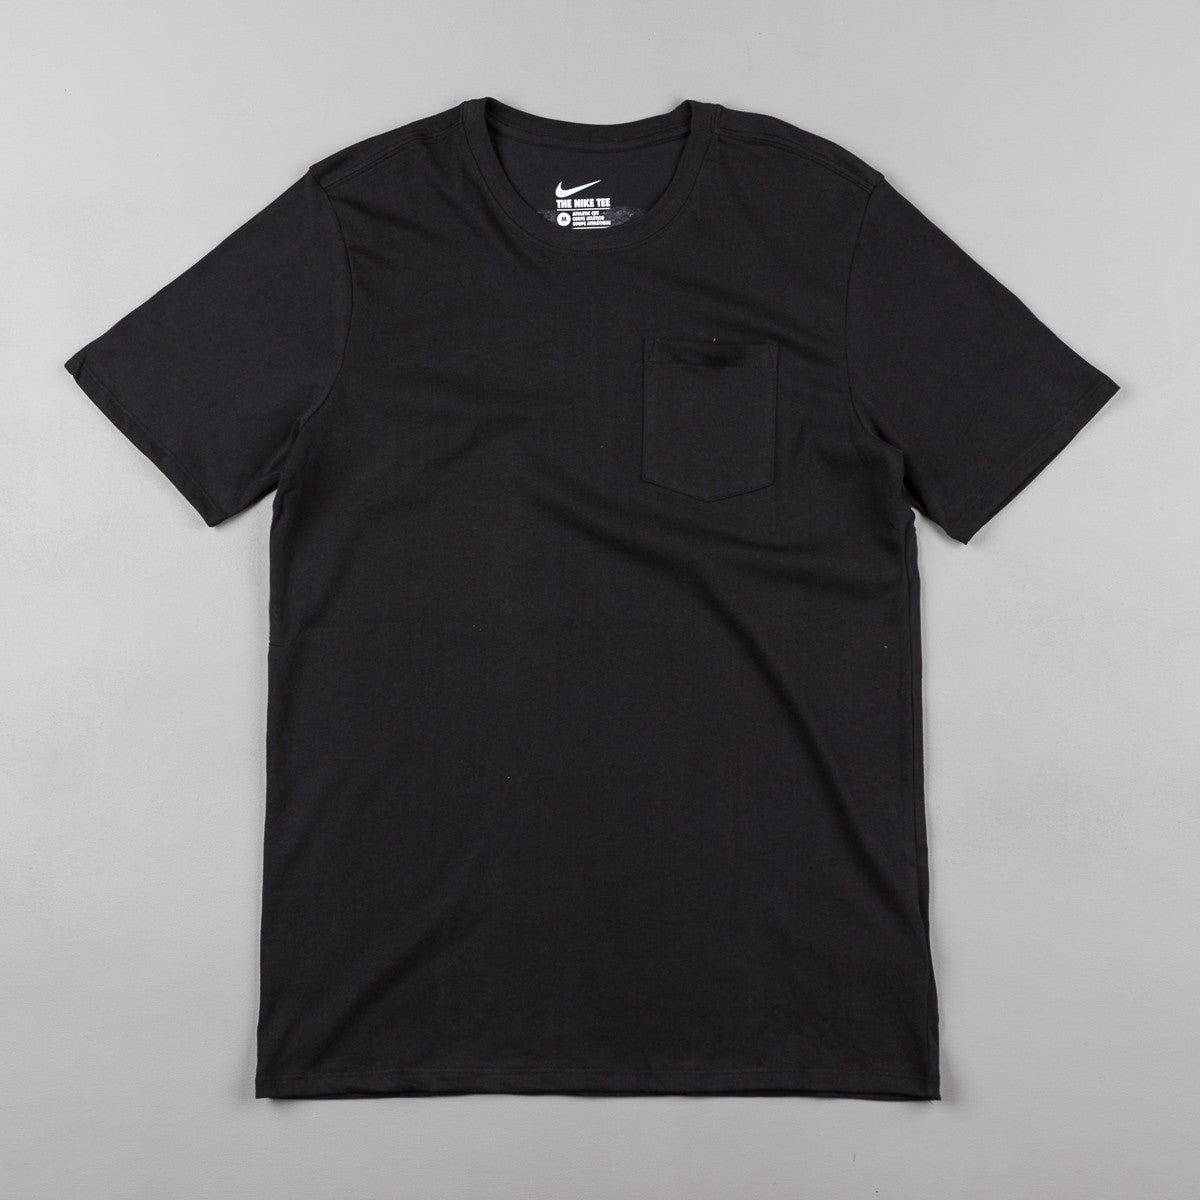 Nike SB Wave T-Shirt - Black / Black / White